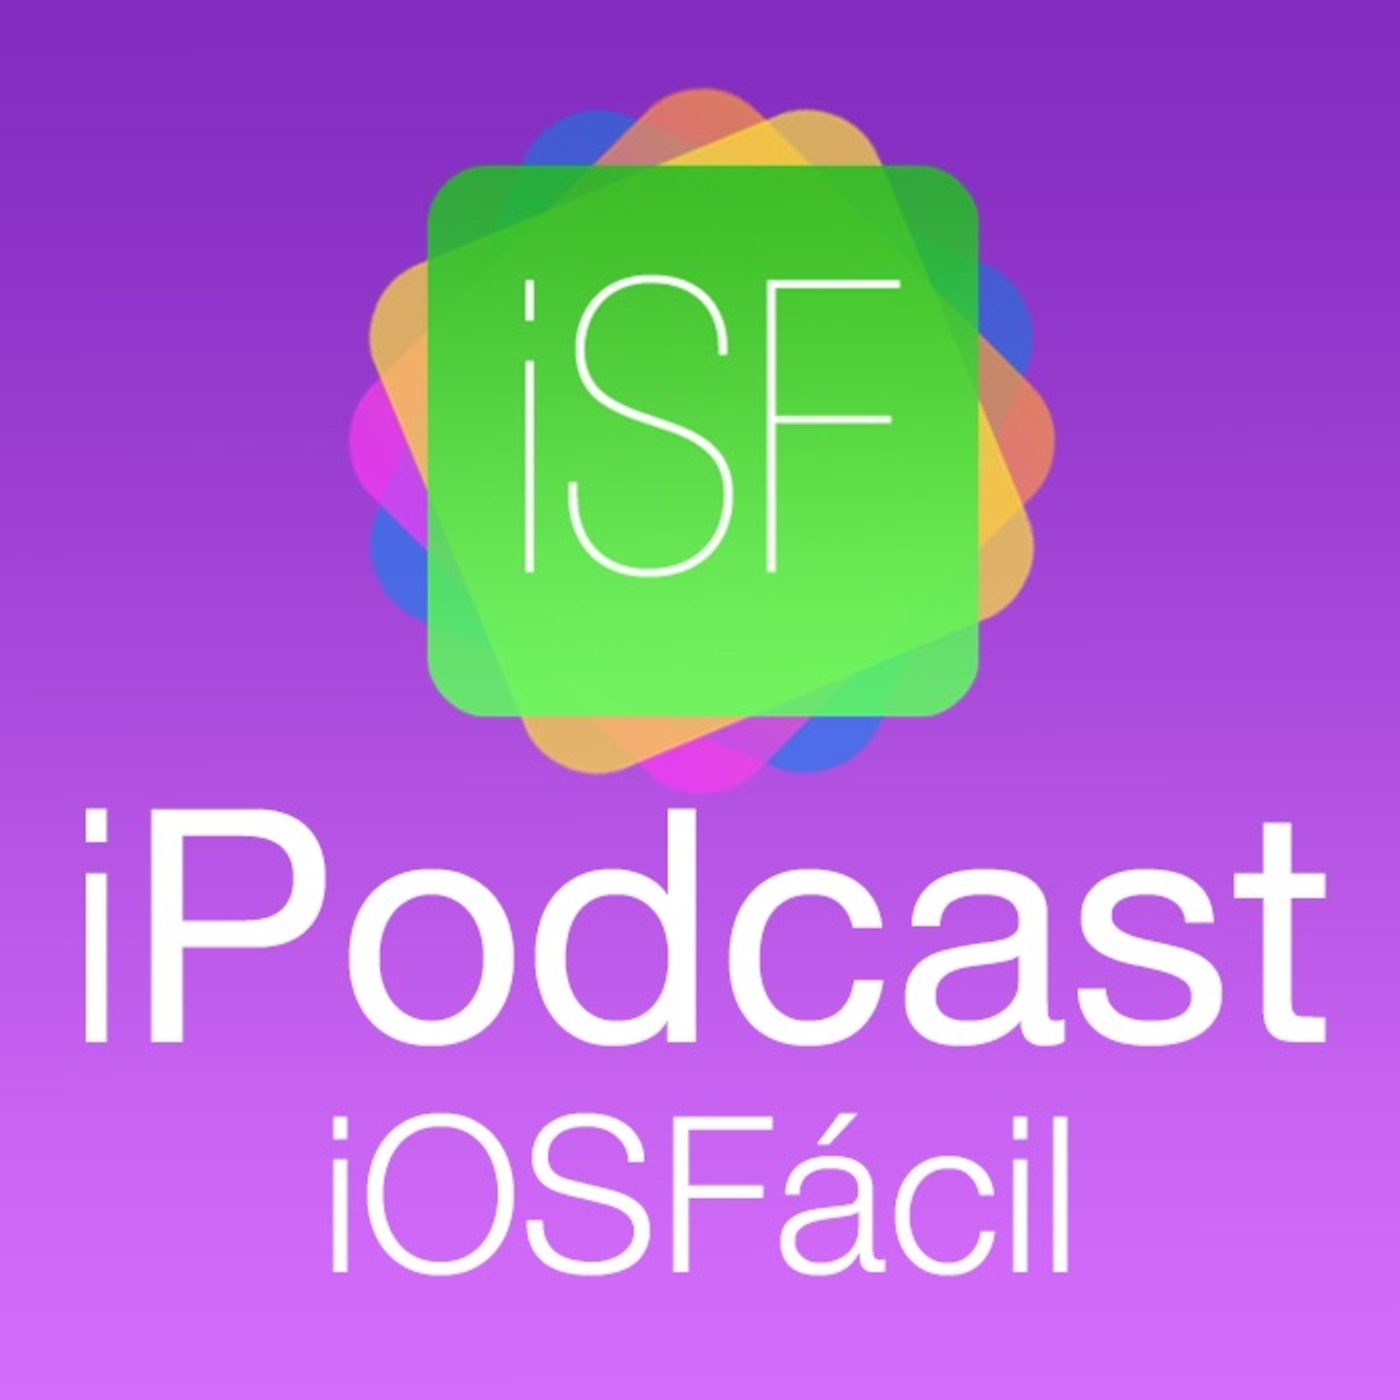 iOSFácil - iPodcast